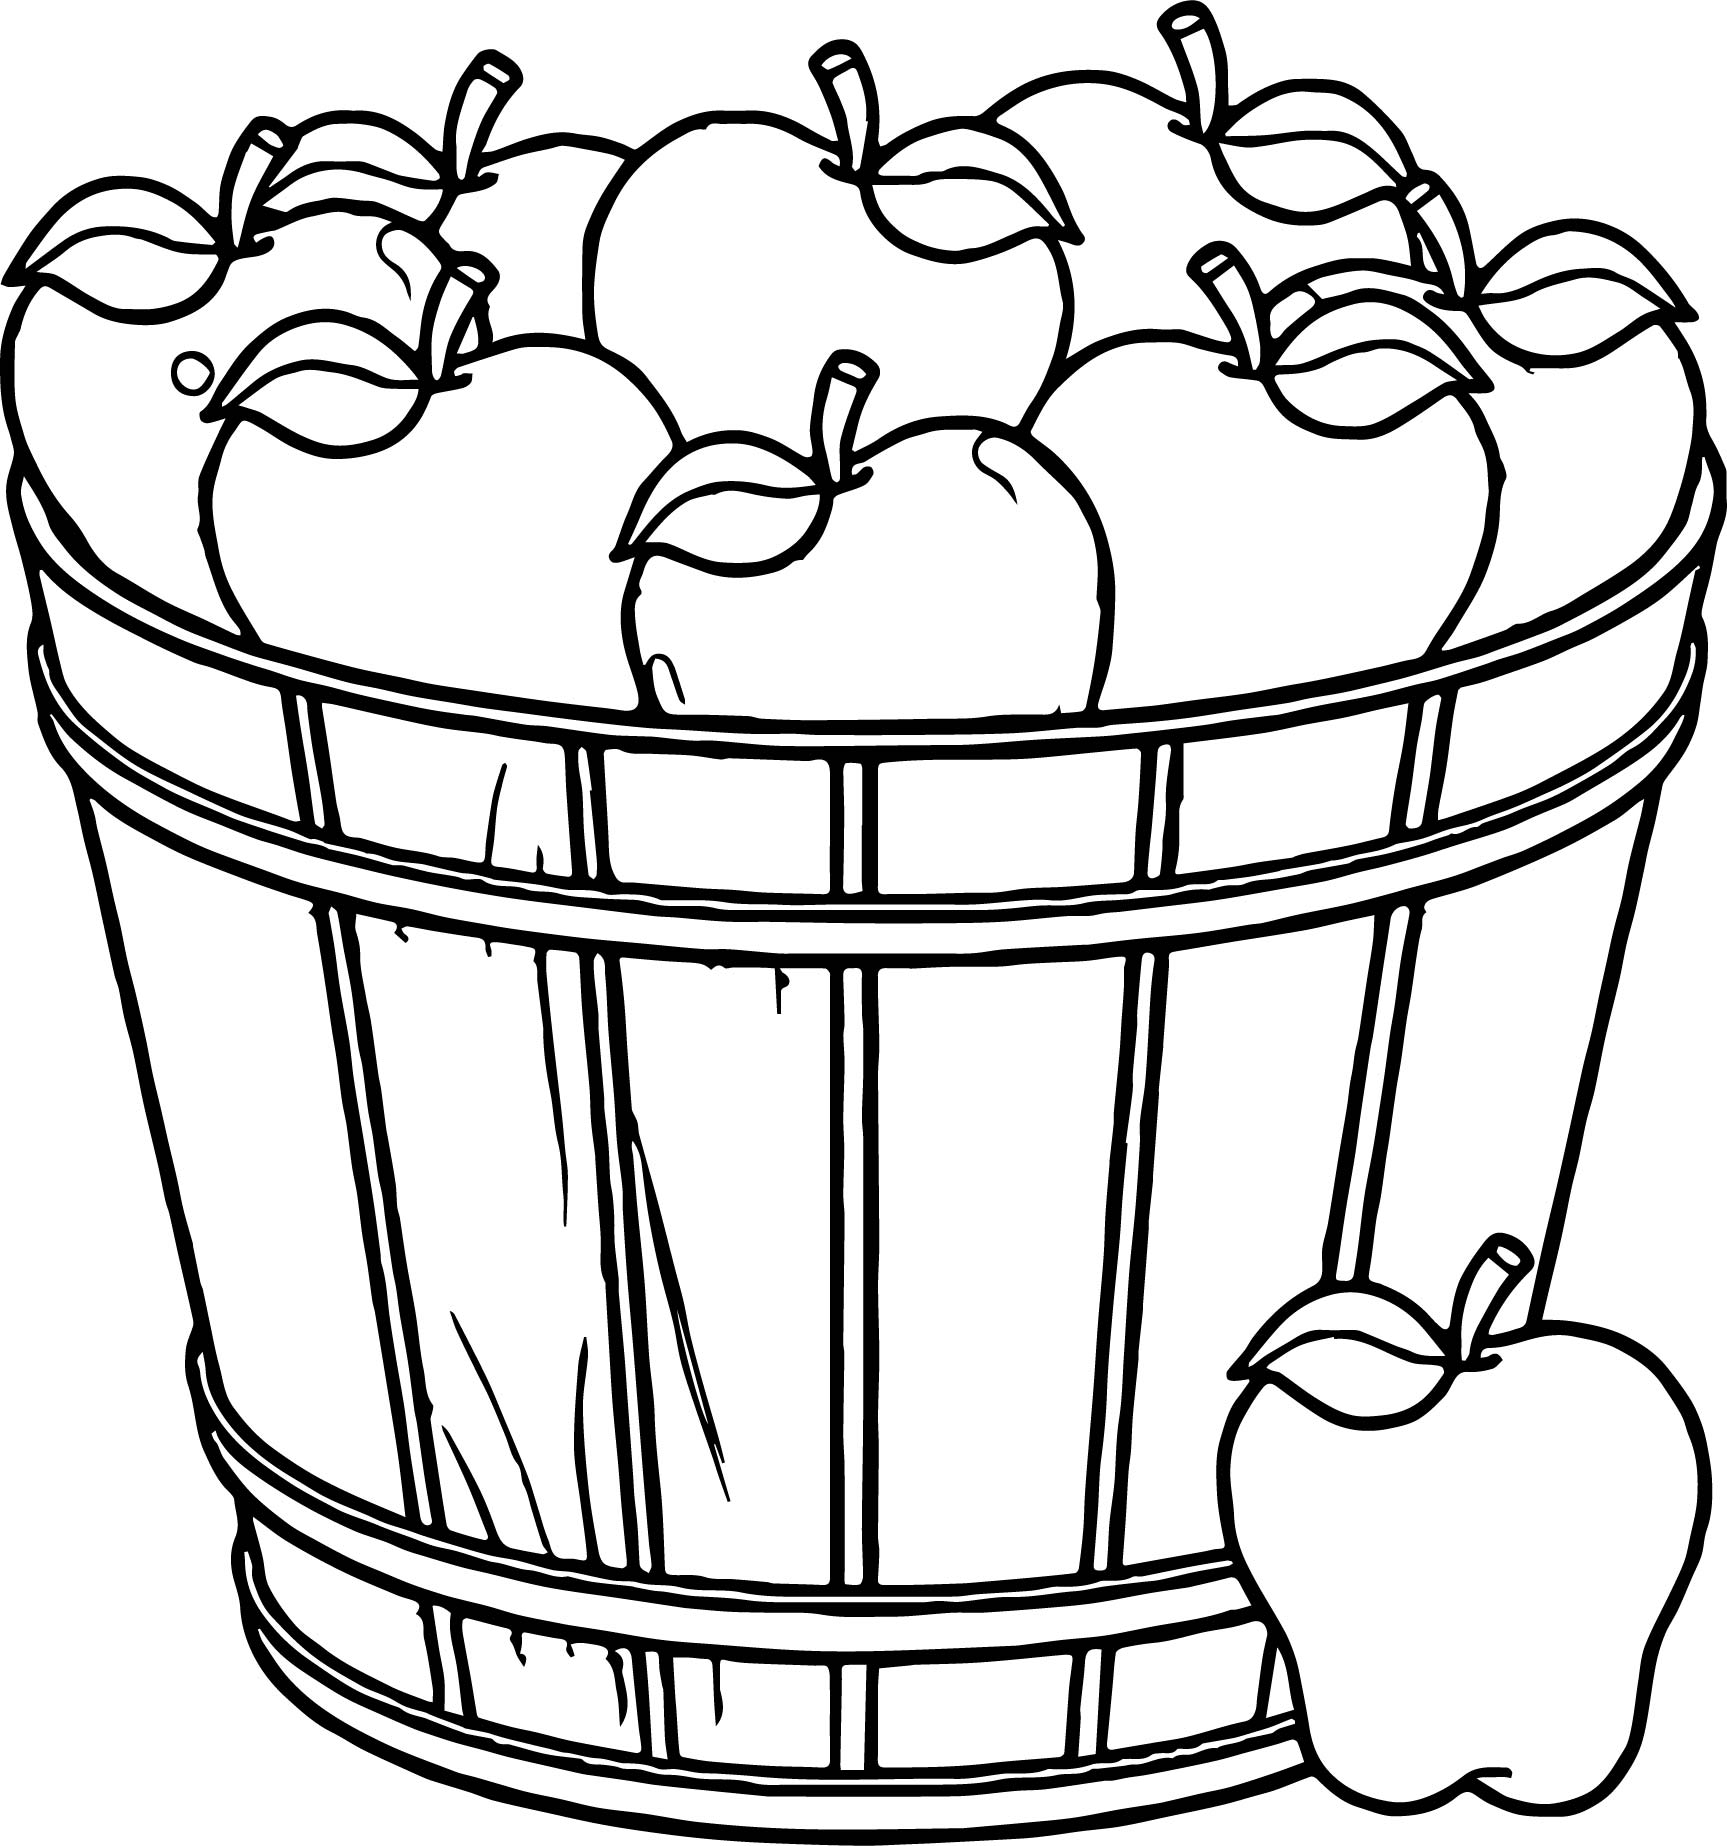 1727x1846 Apple Basket Coloring Page Fall Leaves Coloring Pages